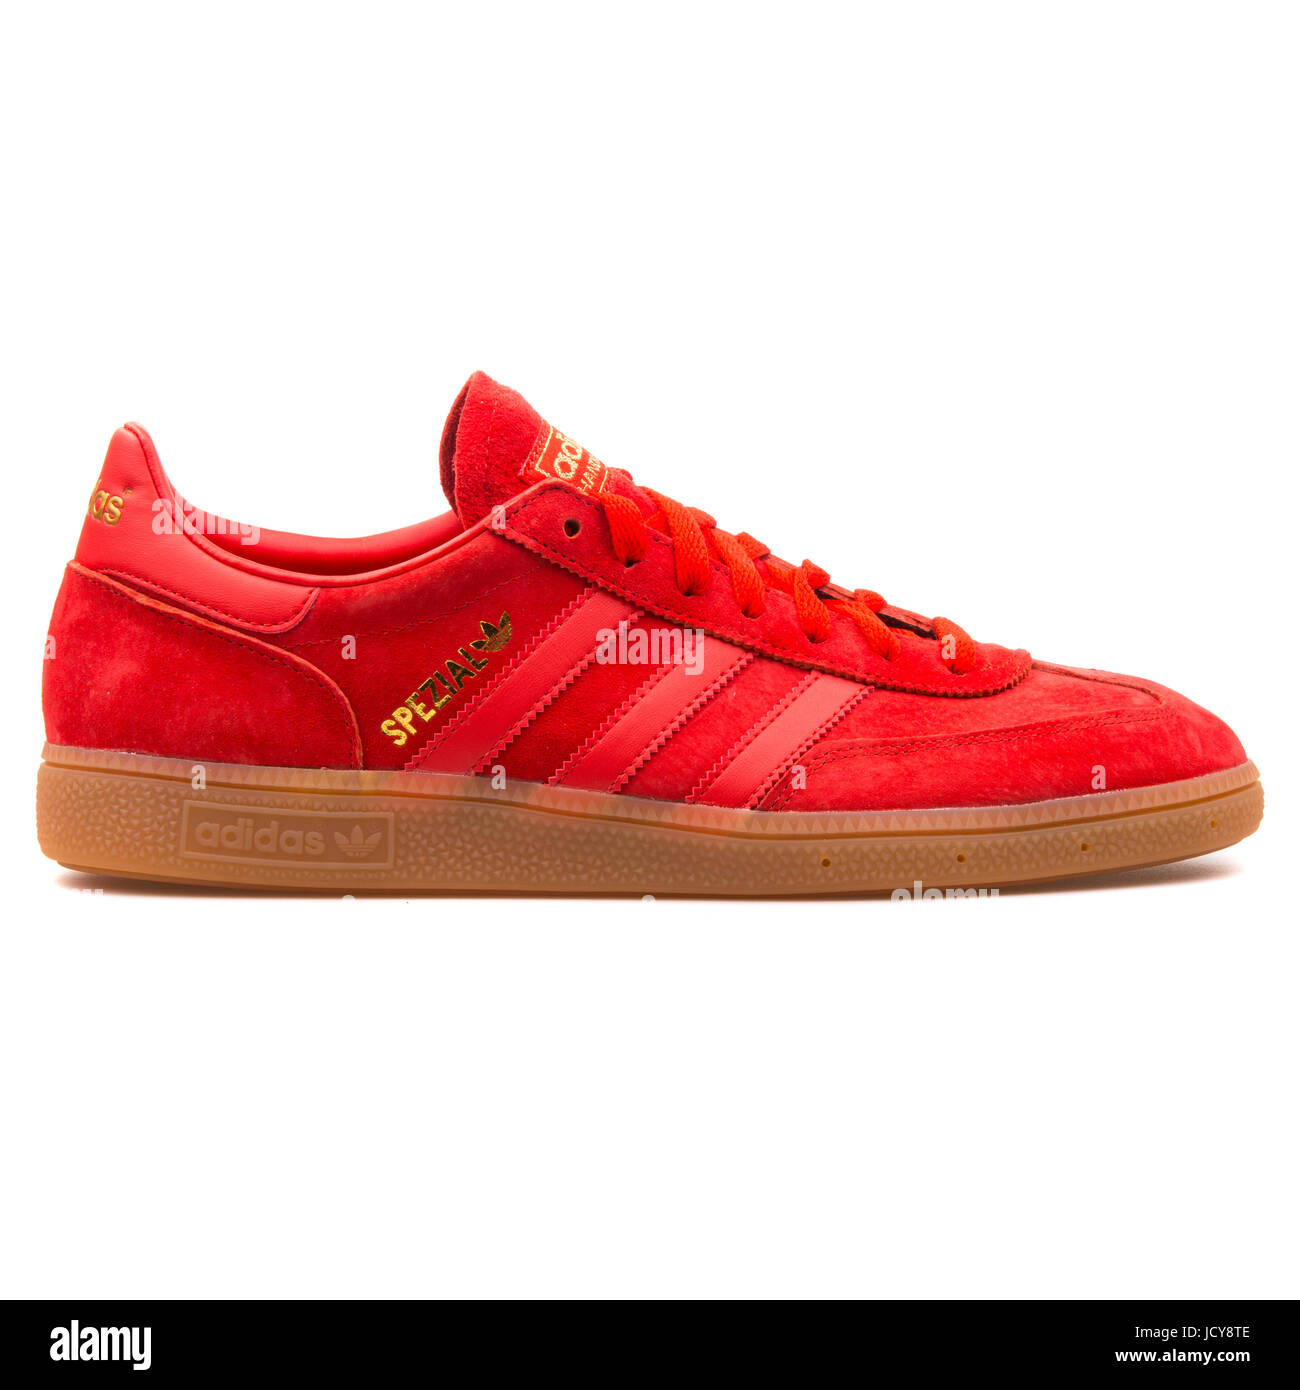 5762b671b Adidas Spezial Red Men s Sports Shoes - B35209 - Stock Image